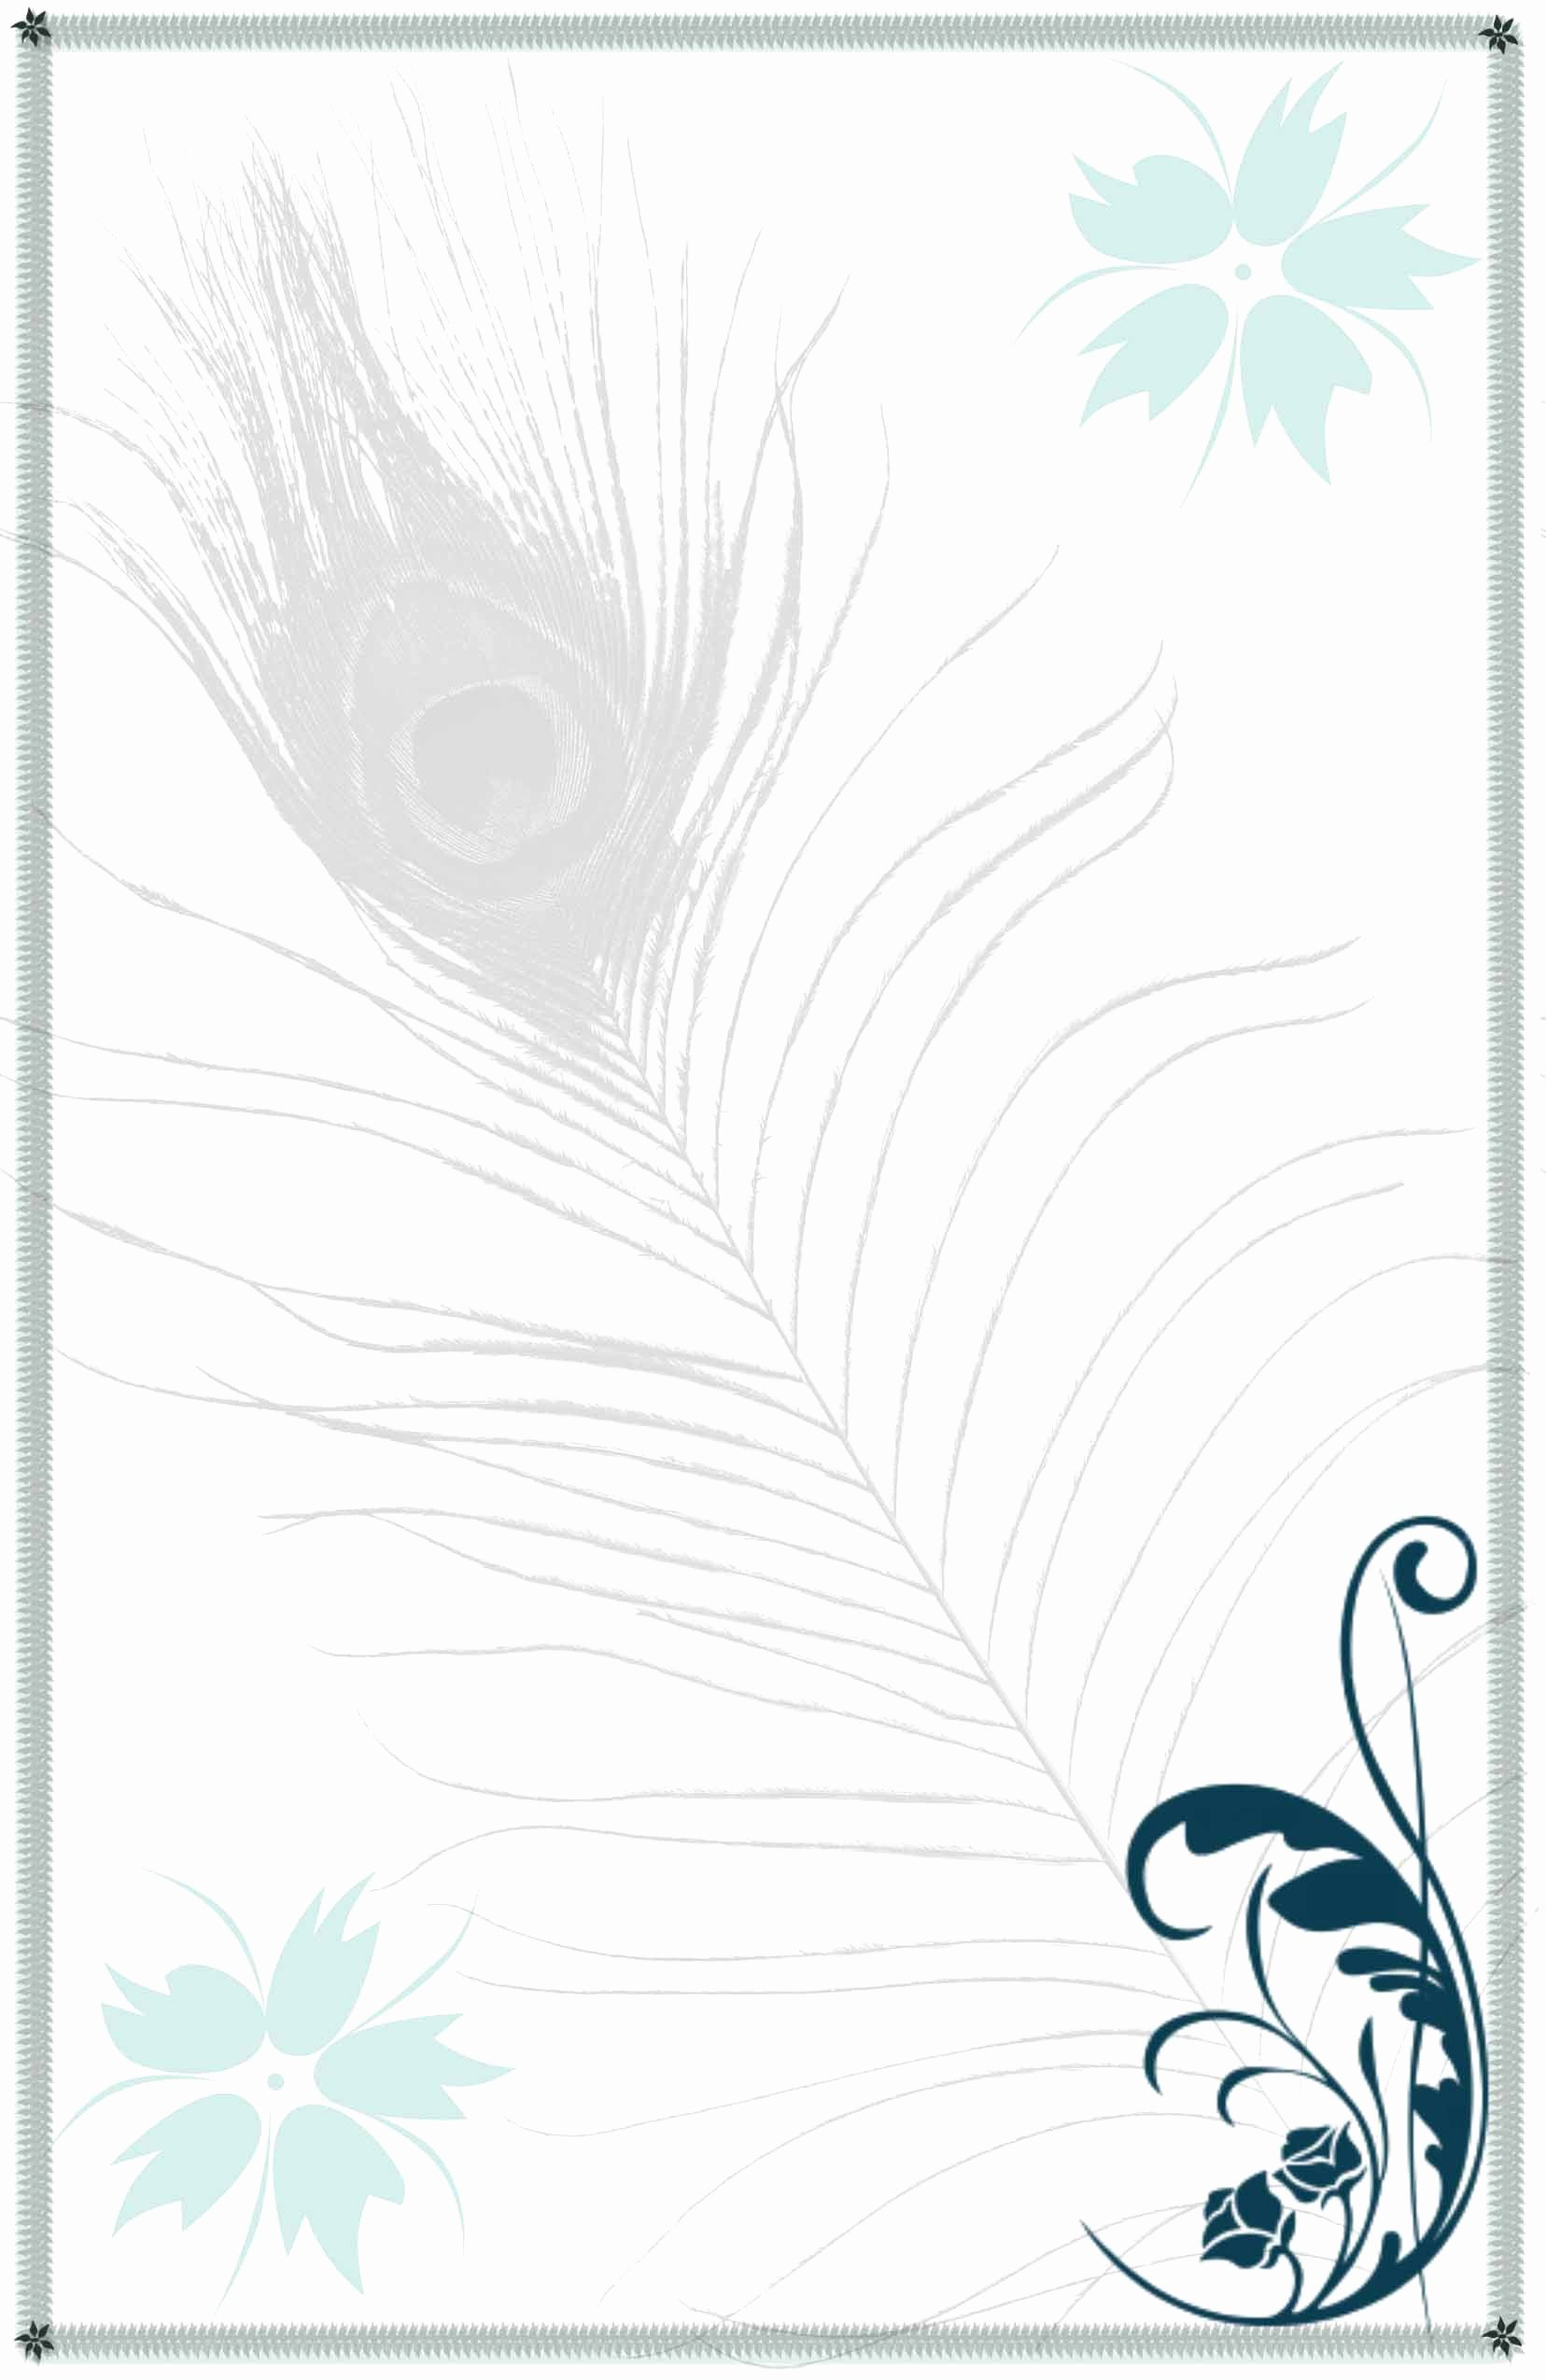 Peacock Invitations Template Free Luxury Peacock Invitations Template Free Peacock Feather